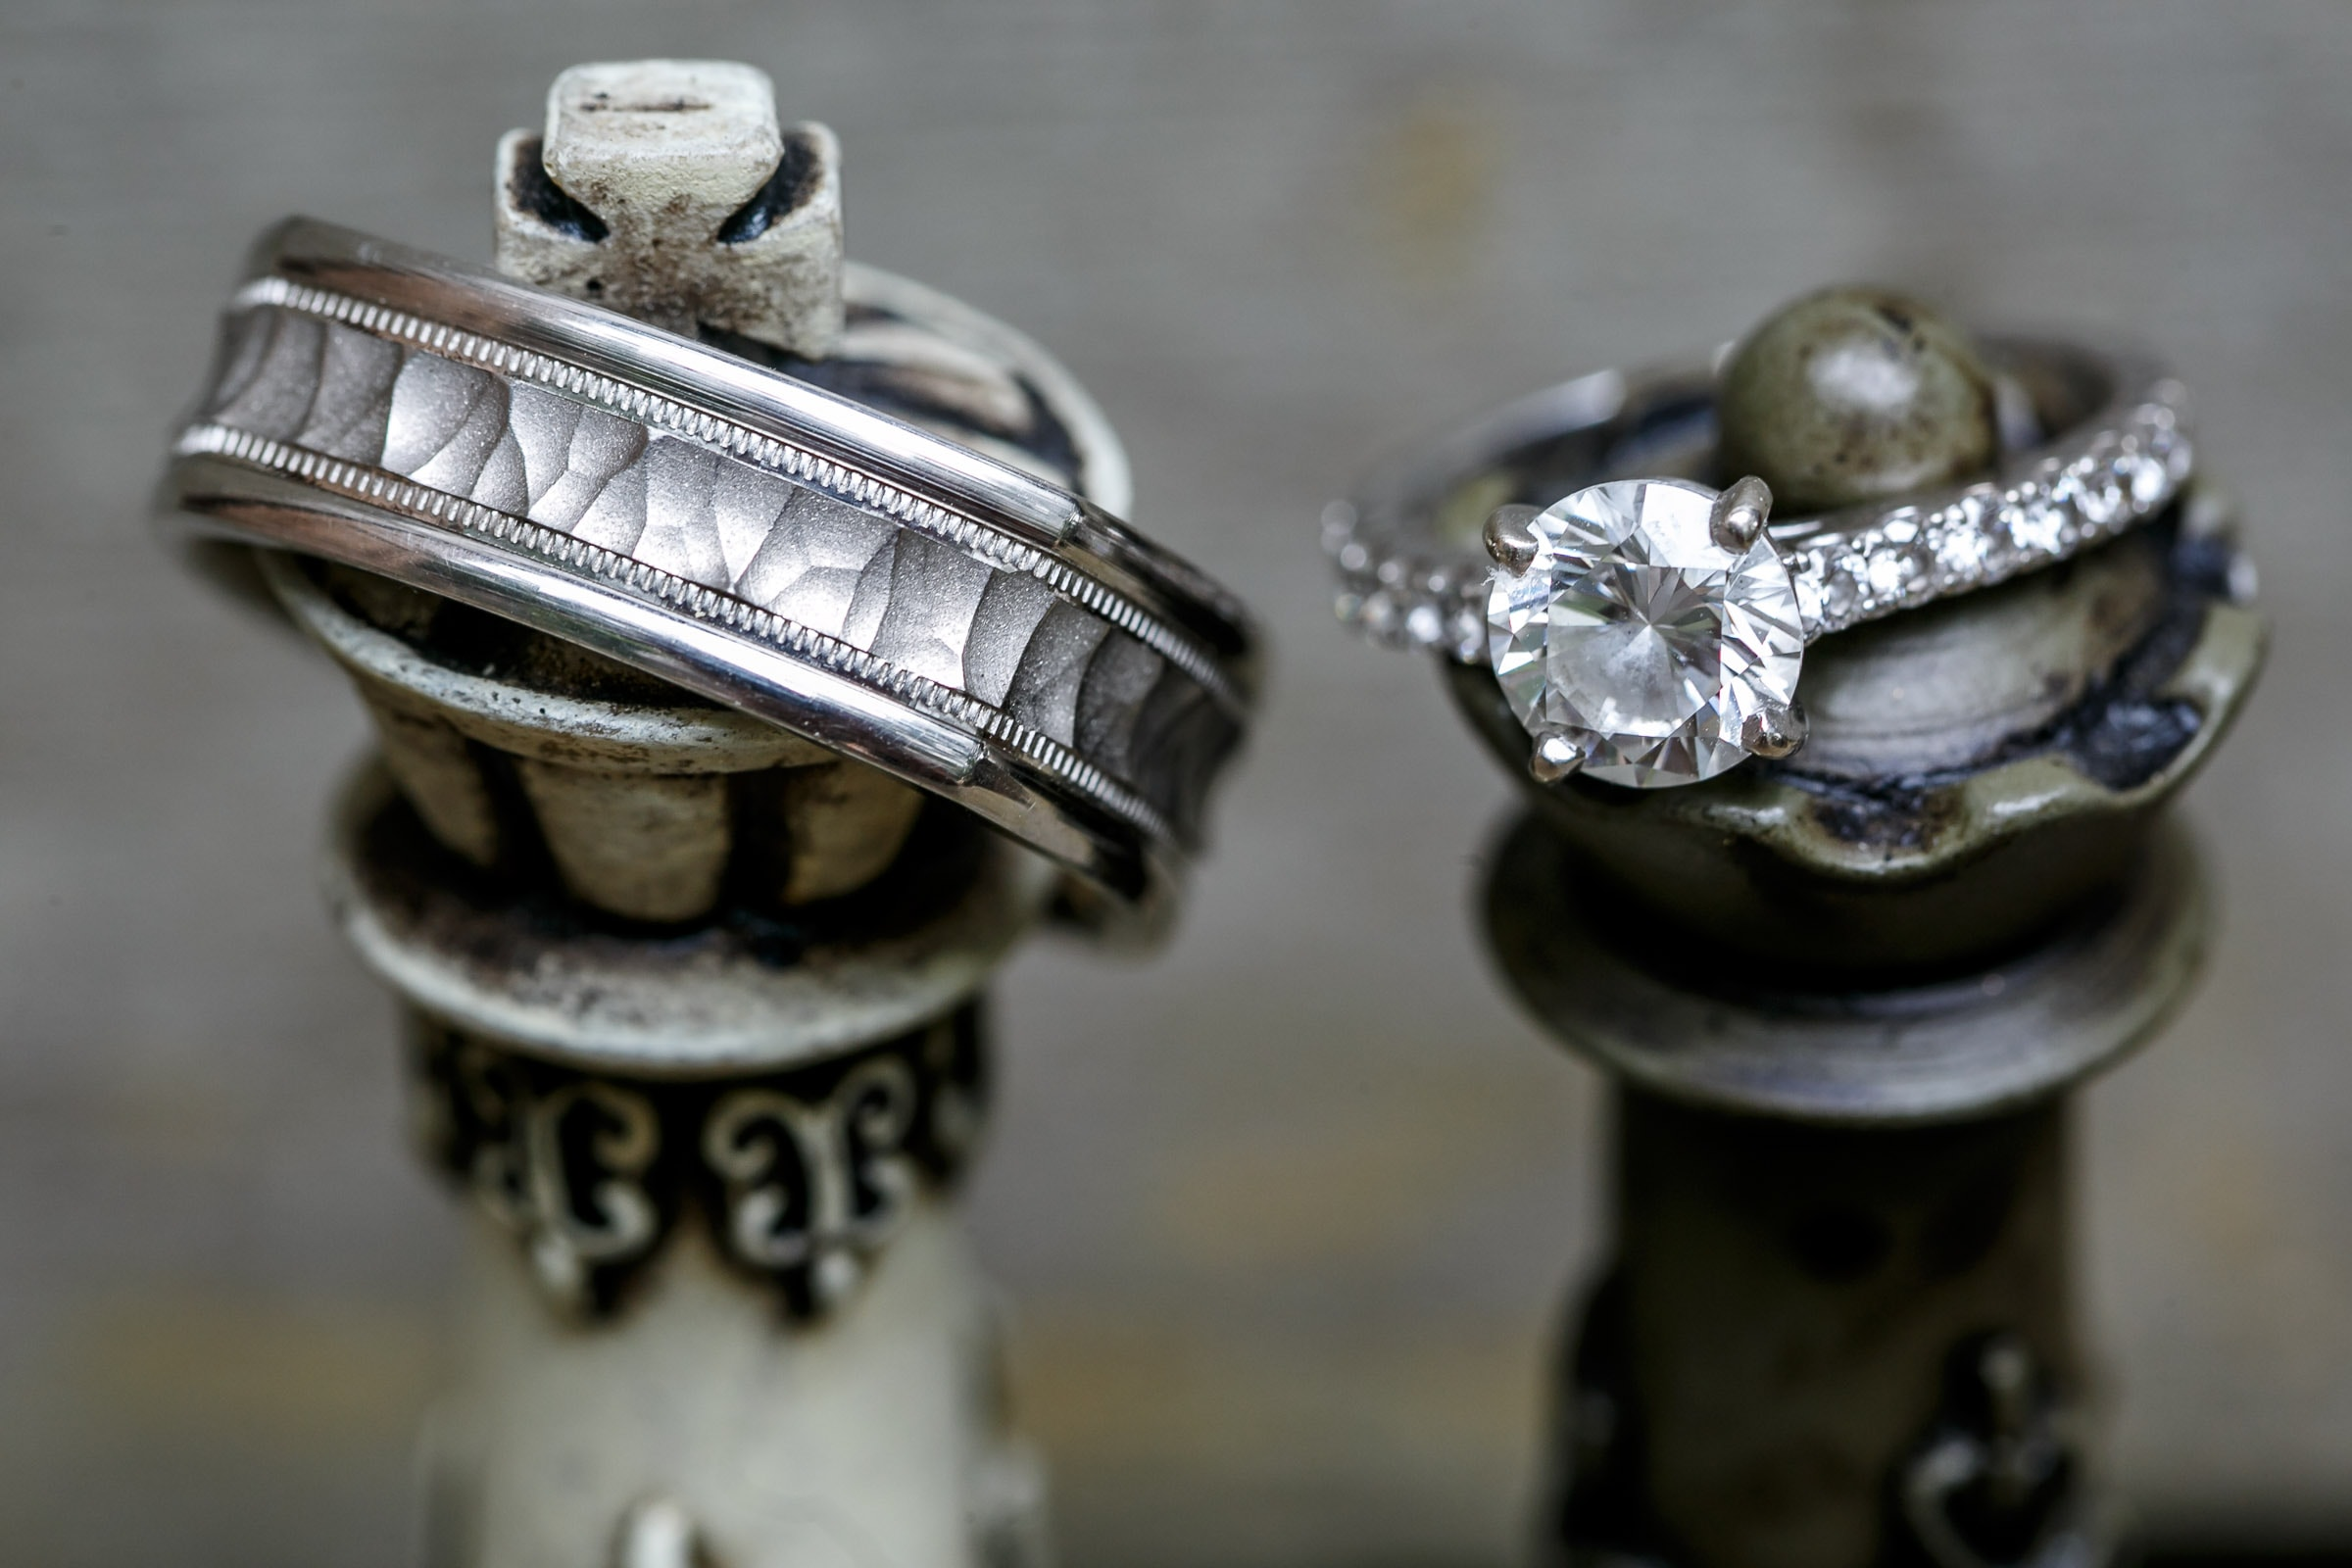 Awesome ring photos of a king and queen pieces from a chess game during a Mendocino Coast wedding at Spring Ranch